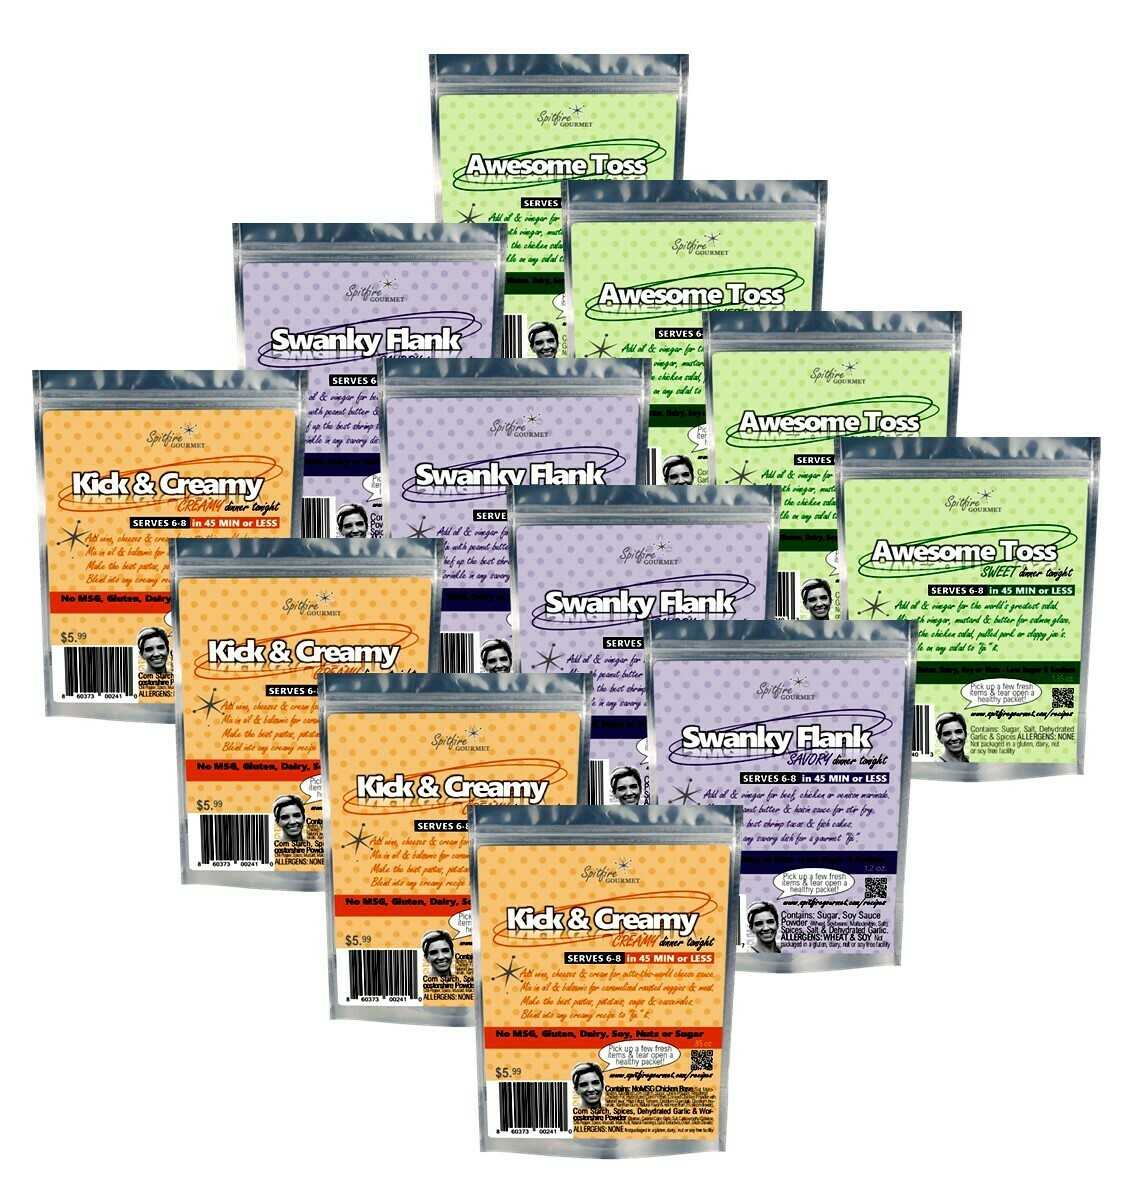 12-PACK REFILL - Cook dinners for 24 nights! You choose how many of each packet in